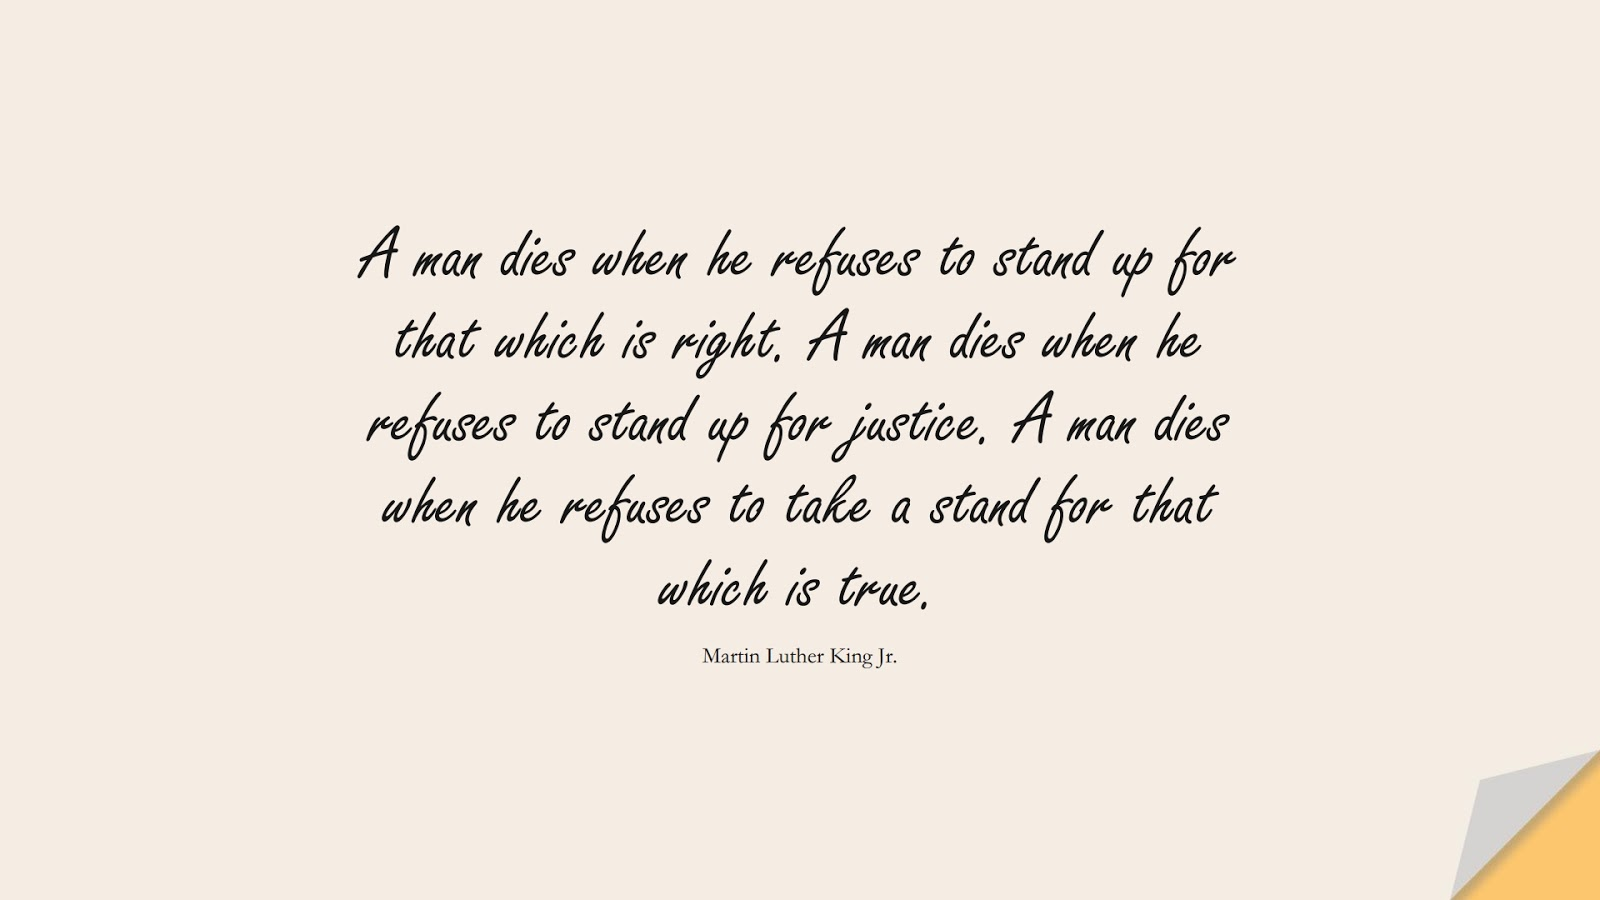 A man dies when he refuses to stand up for that which is right. A man dies when he refuses to stand up for justice. A man dies when he refuses to take a stand for that which is true. (Martin Luther King Jr.);  #MartinLutherKingJrQuotes